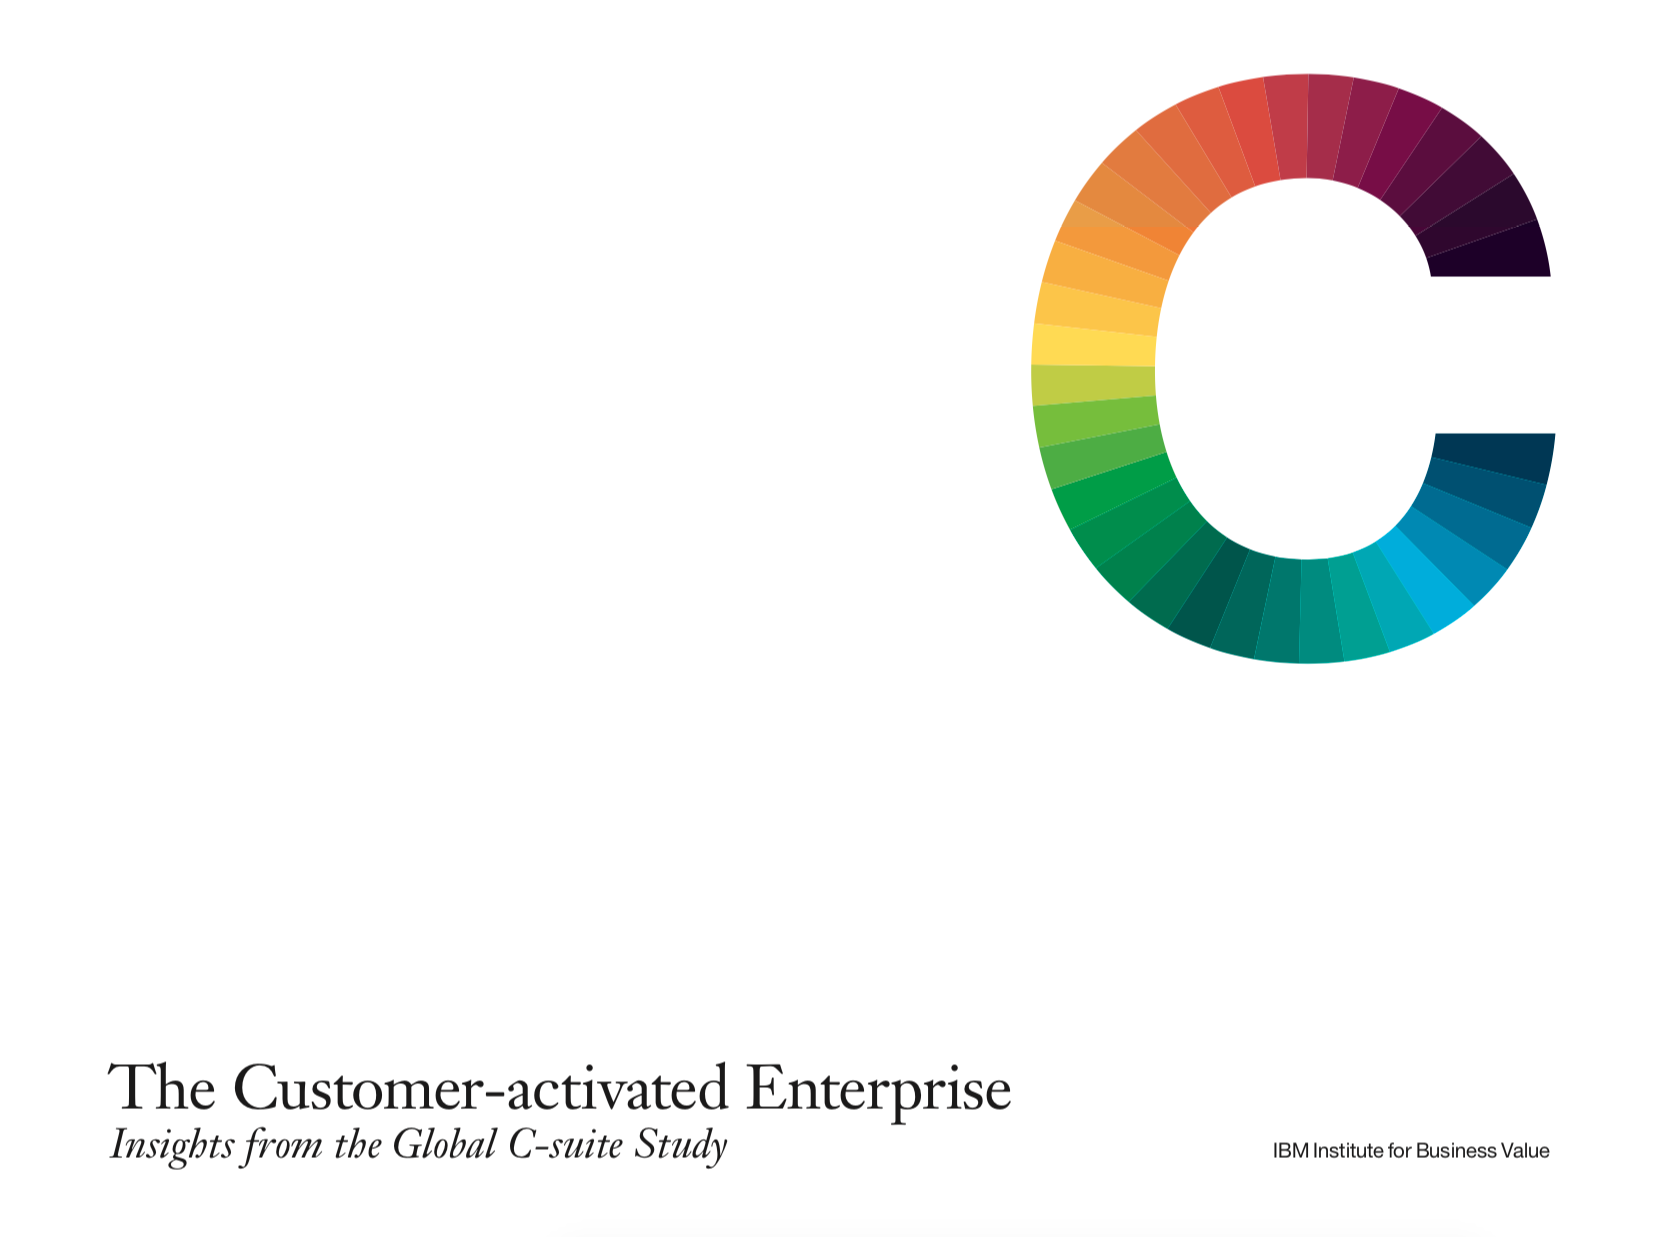 The Customer-activated Enterprise